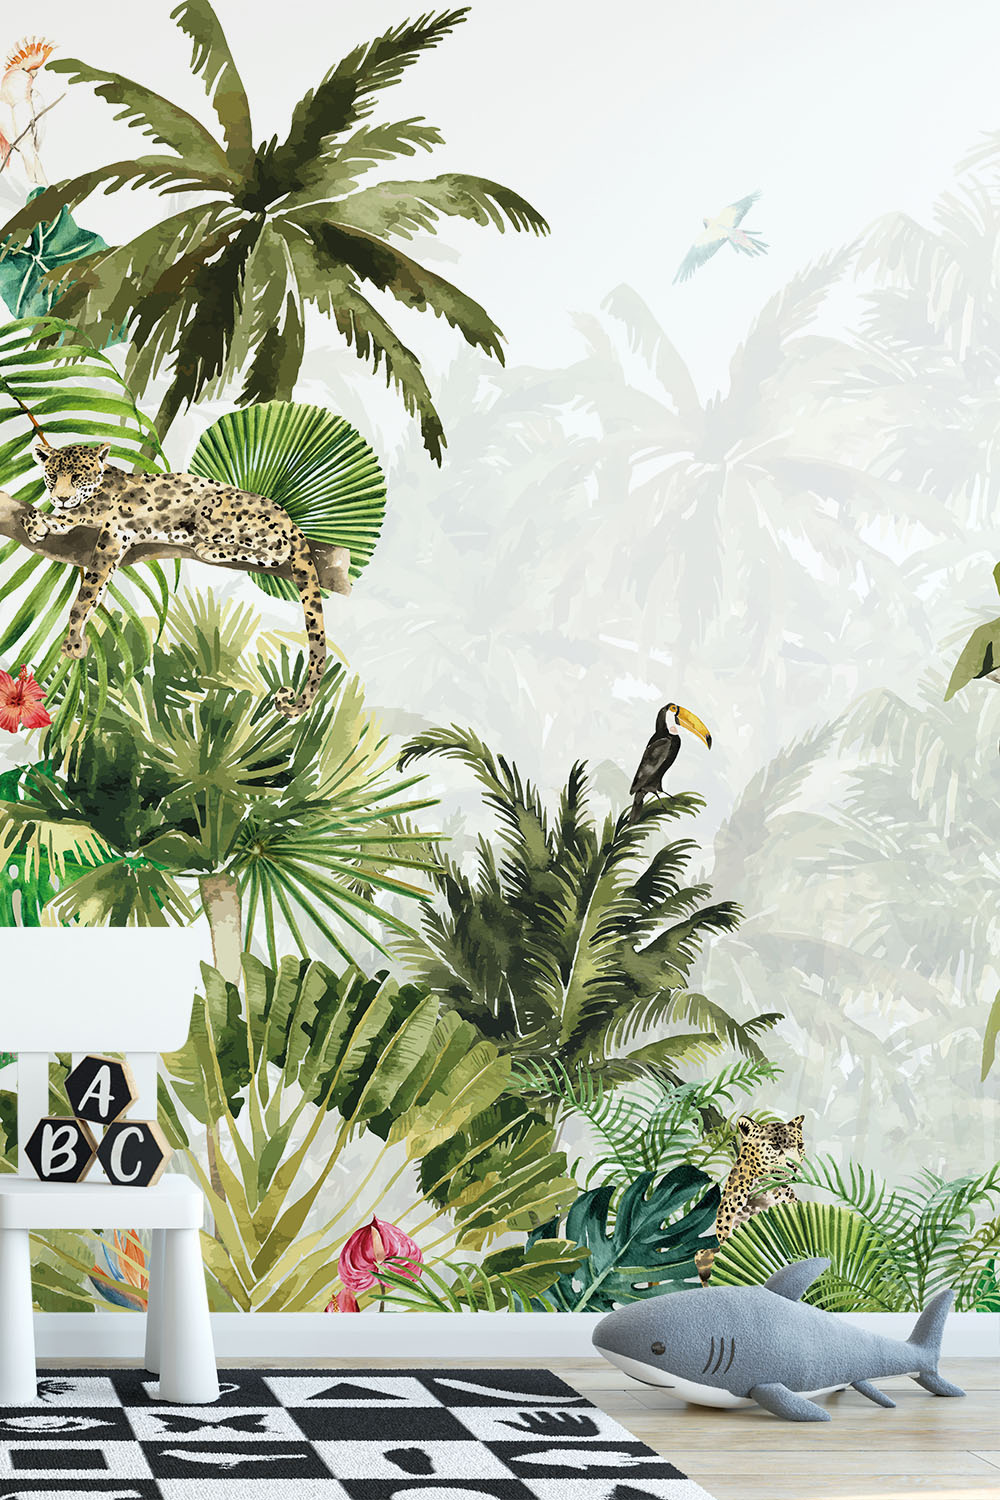 Jungle behang kinderkamer - Diep in de jungle ~ Walloha